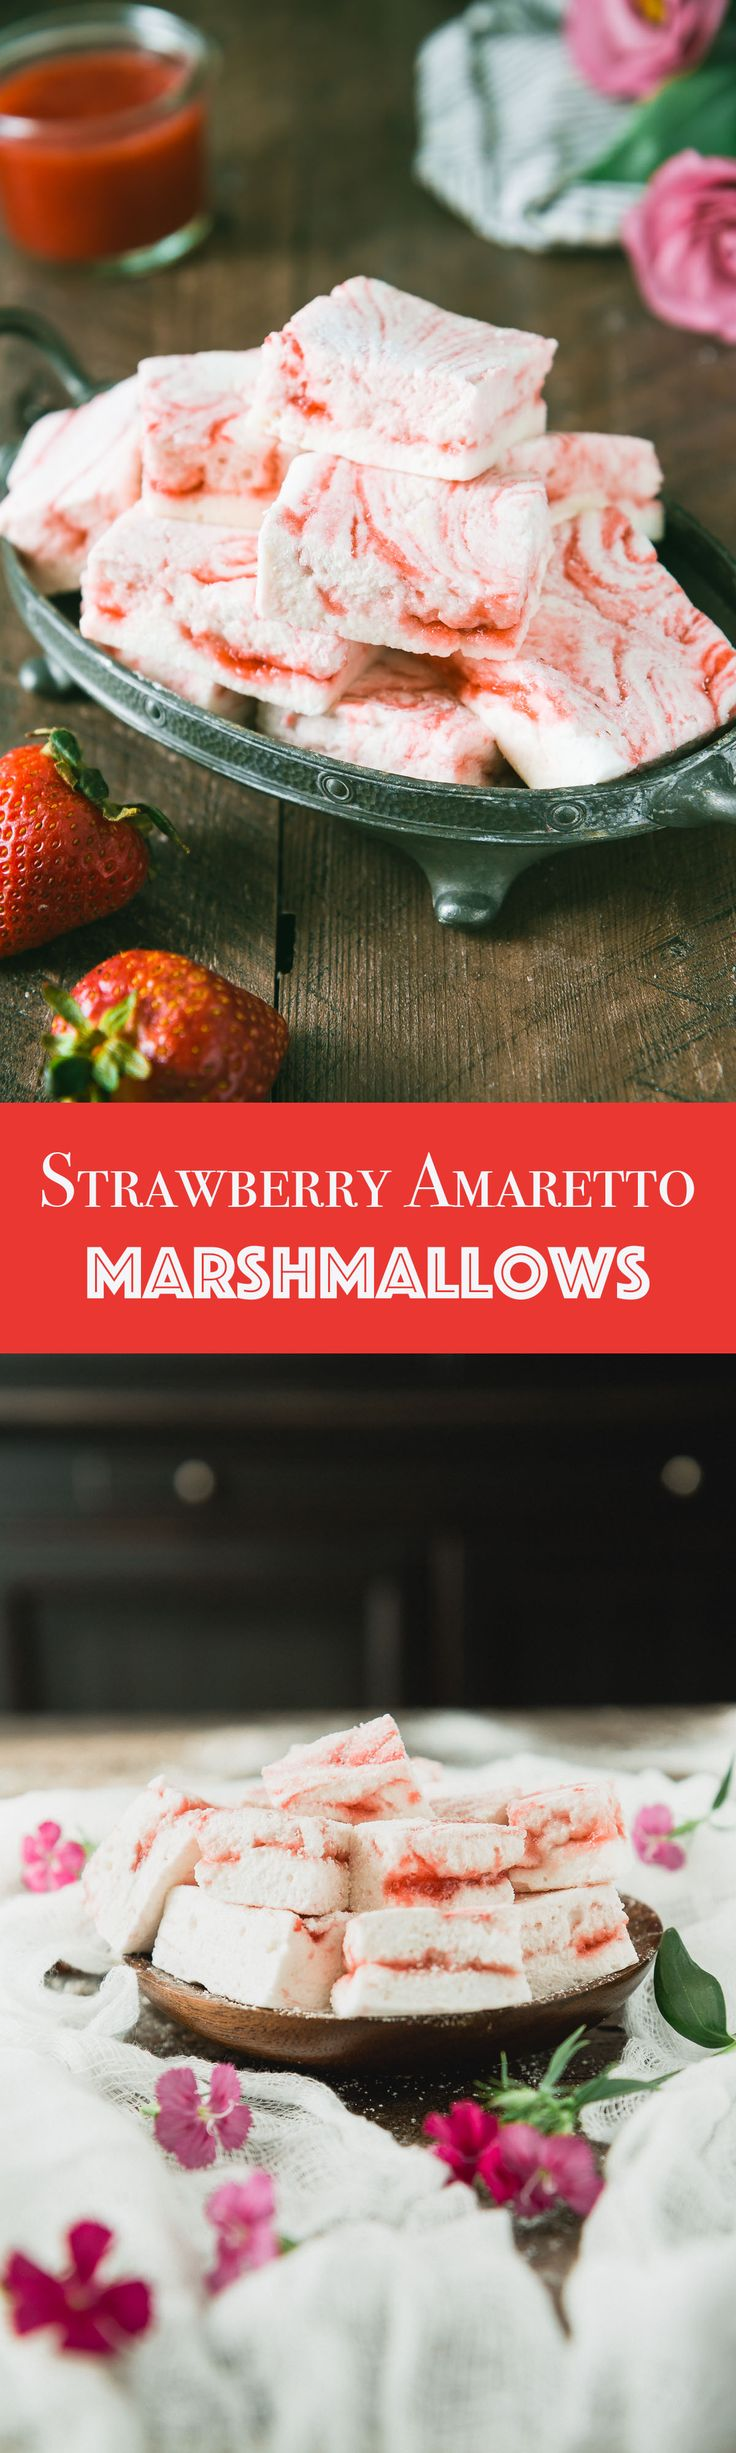 Strawberry Amaretto Marshmallows - These pillowy, melt in your mouth marshmallows get a sophisticated edge with strawberry puree complimented with hints of sweet almond from Amaretto.